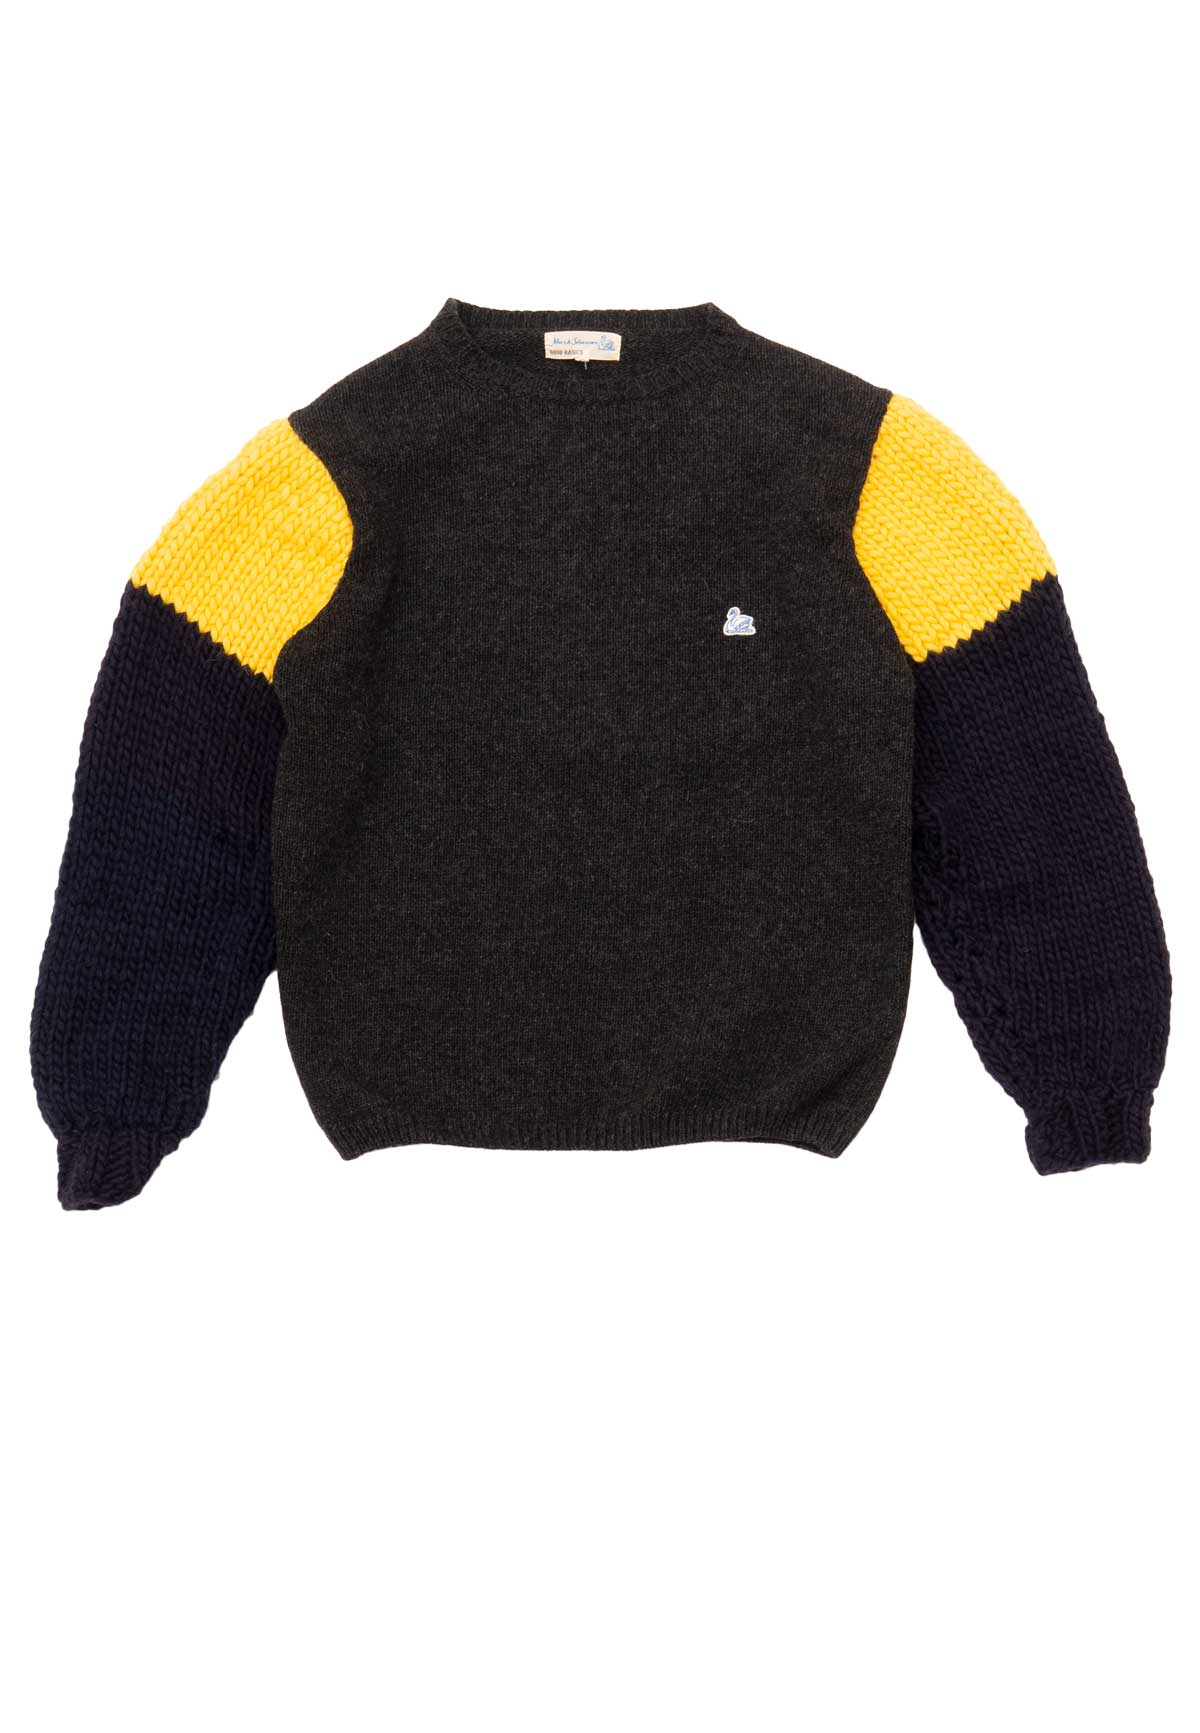 Moeon Upcycling Knit Jumper